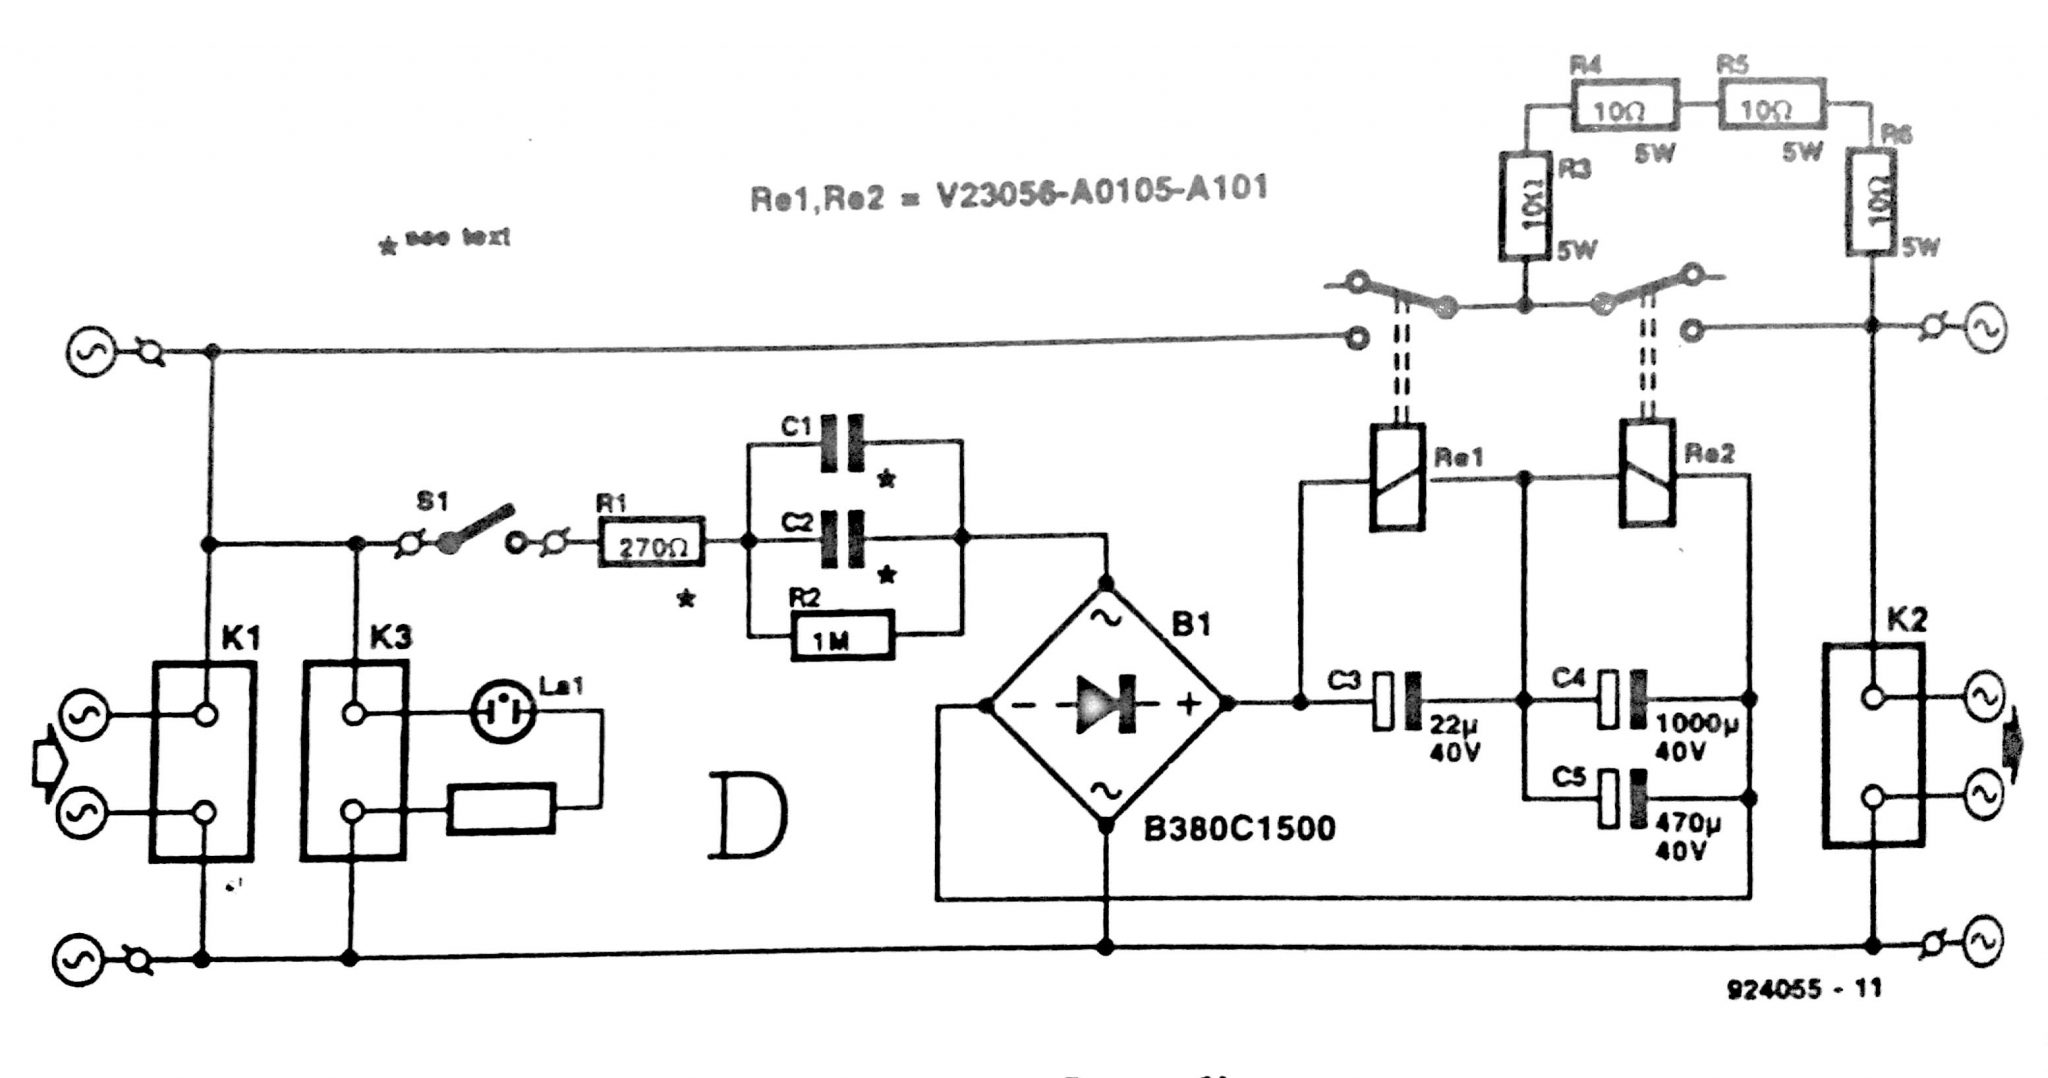 time delay circuit diagram the wiring diagram time delay circuit diagram vidim wiring diagram circuit diagram